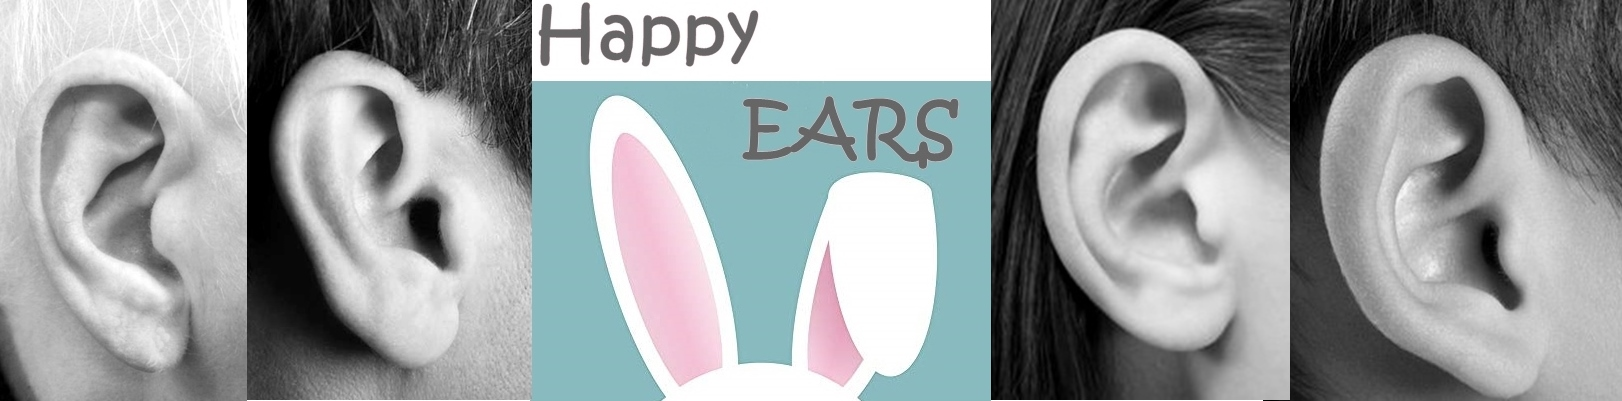 Hyperbaric Oxygen Treatment – Tricks for Securing Happy Ears